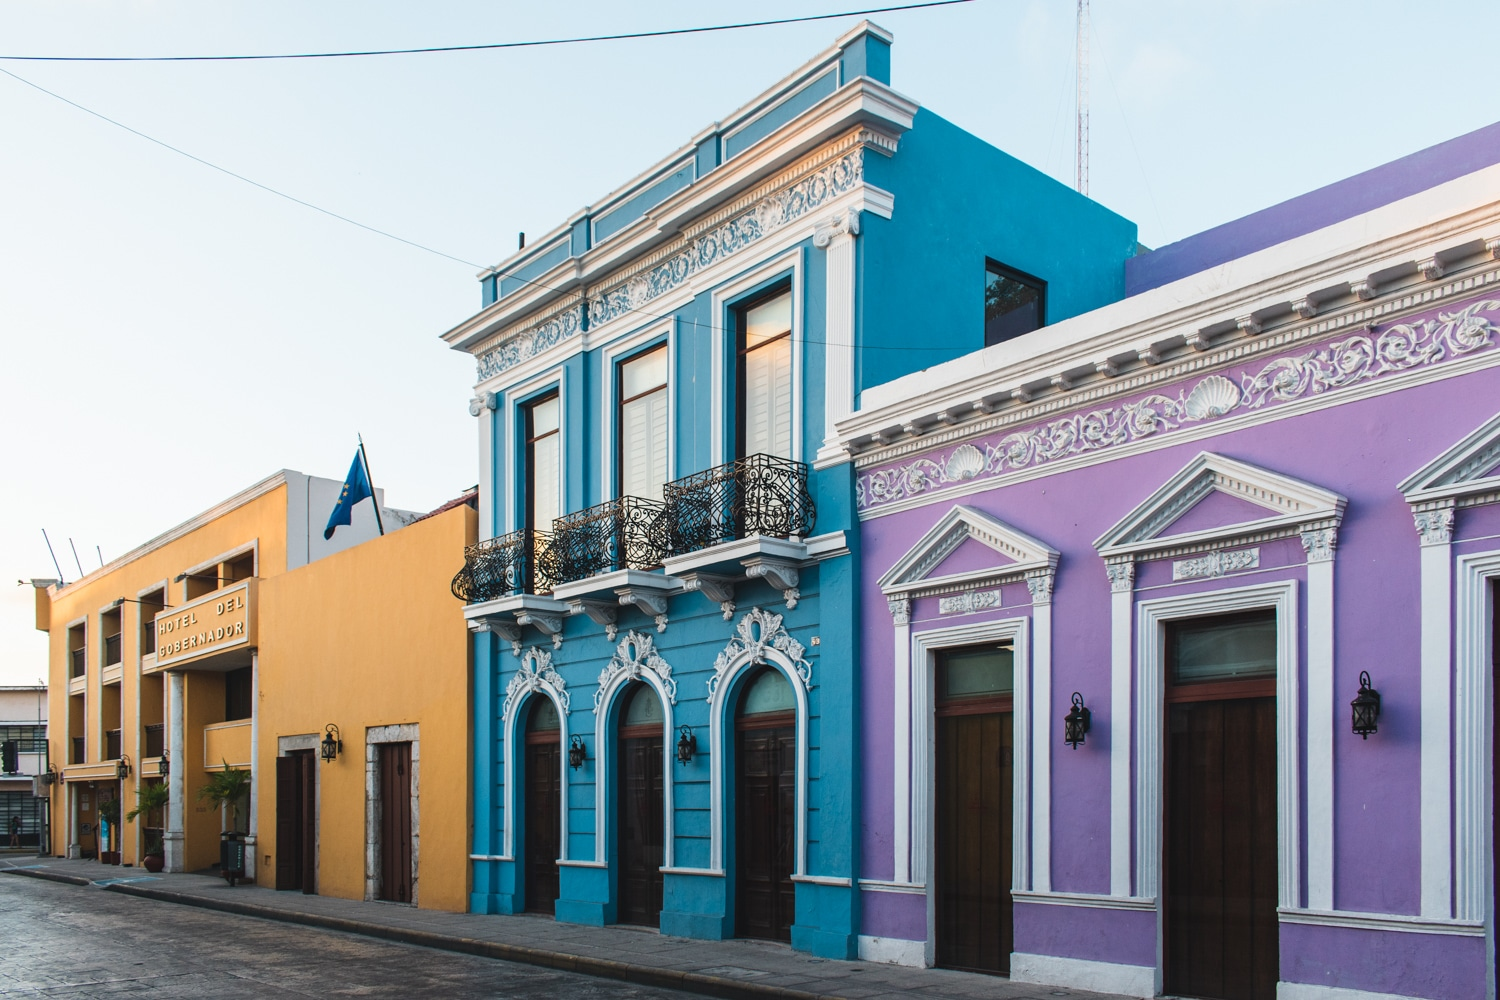 Streets of the Yucatan full of colour